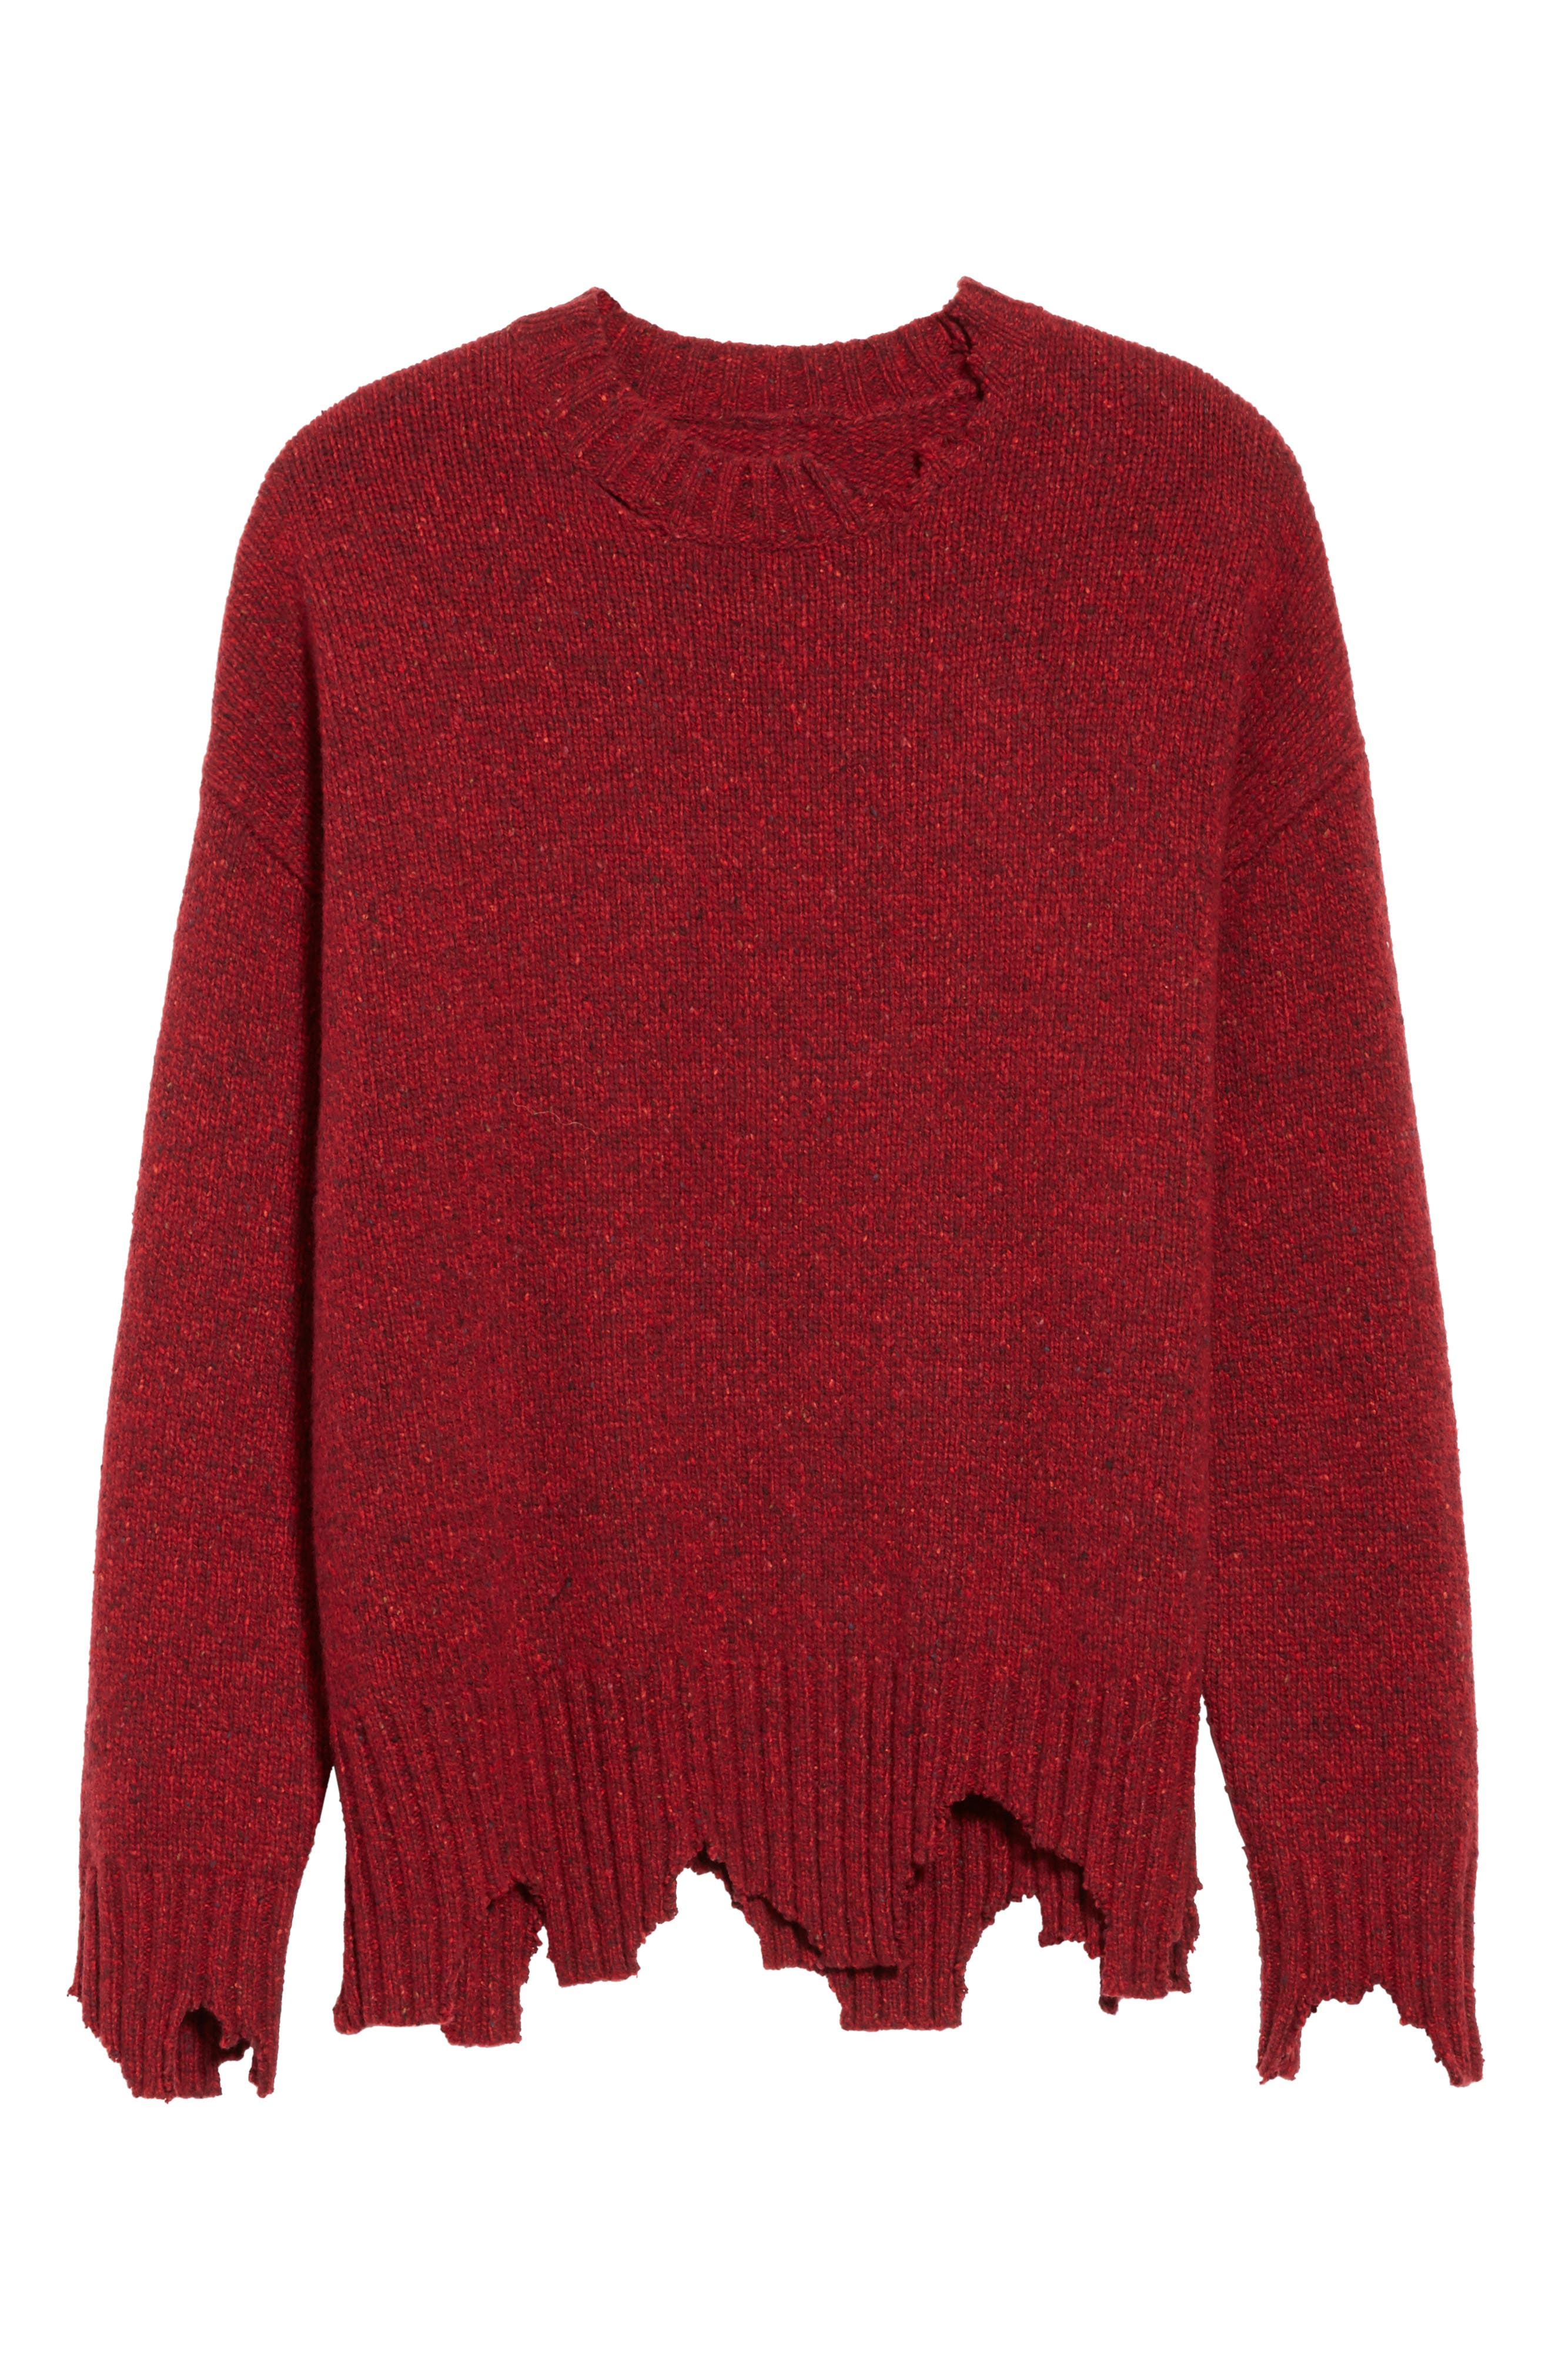 Destroyed Crewneck Sweater,                             Alternate thumbnail 6, color,                             Red